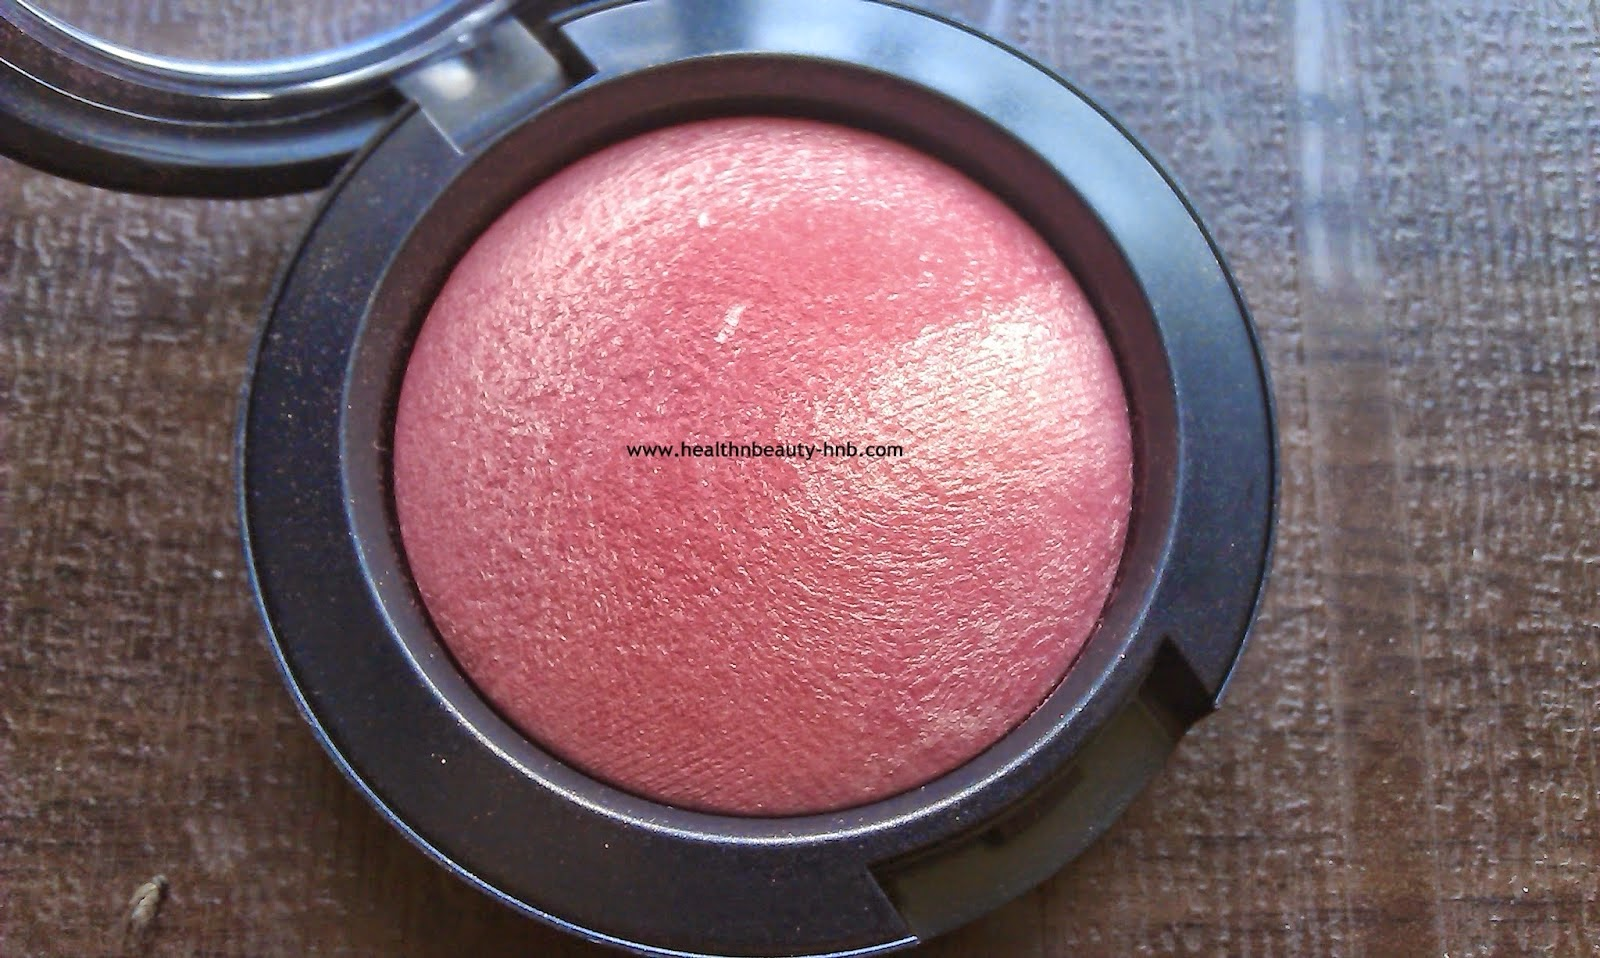 MAC Petal Power Baked Blush (Fantasy of Flowers Collection)